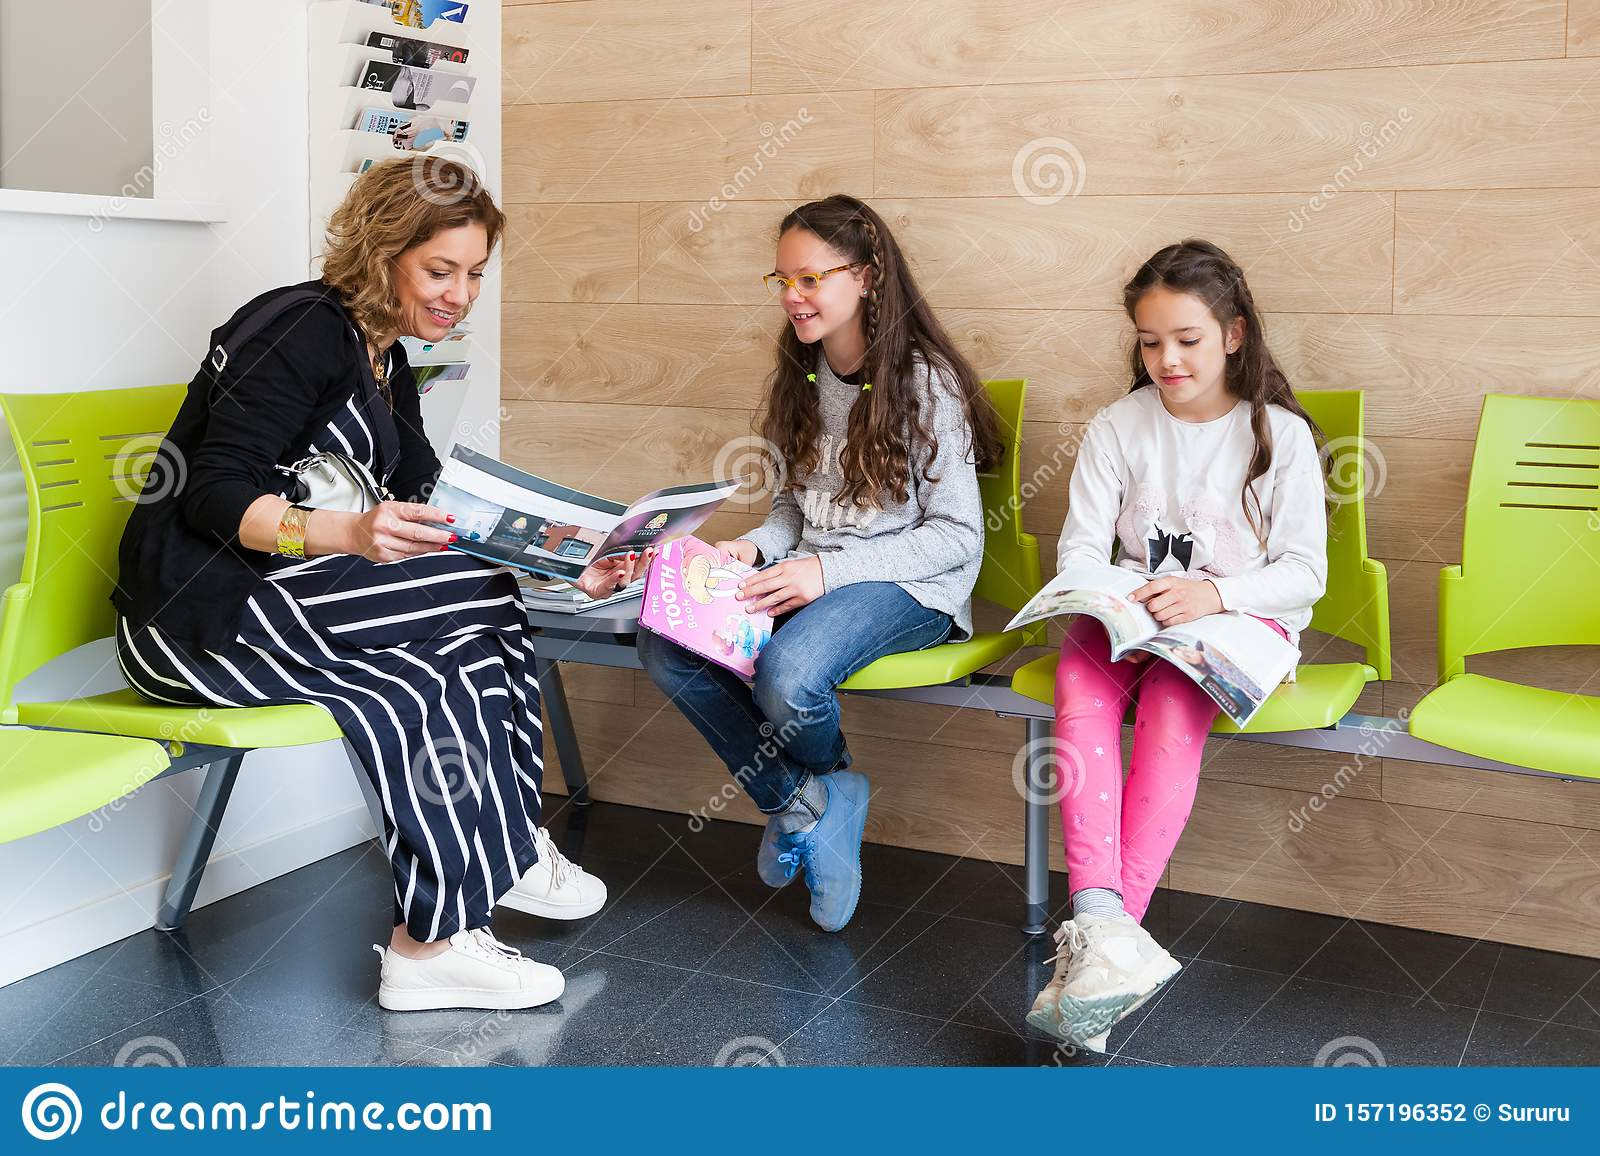 Two Young Girls With Their Mother Sitting In The Waiting Room Of A Medical Clinic Stock Photo Image Of Hospital Decor 157196352